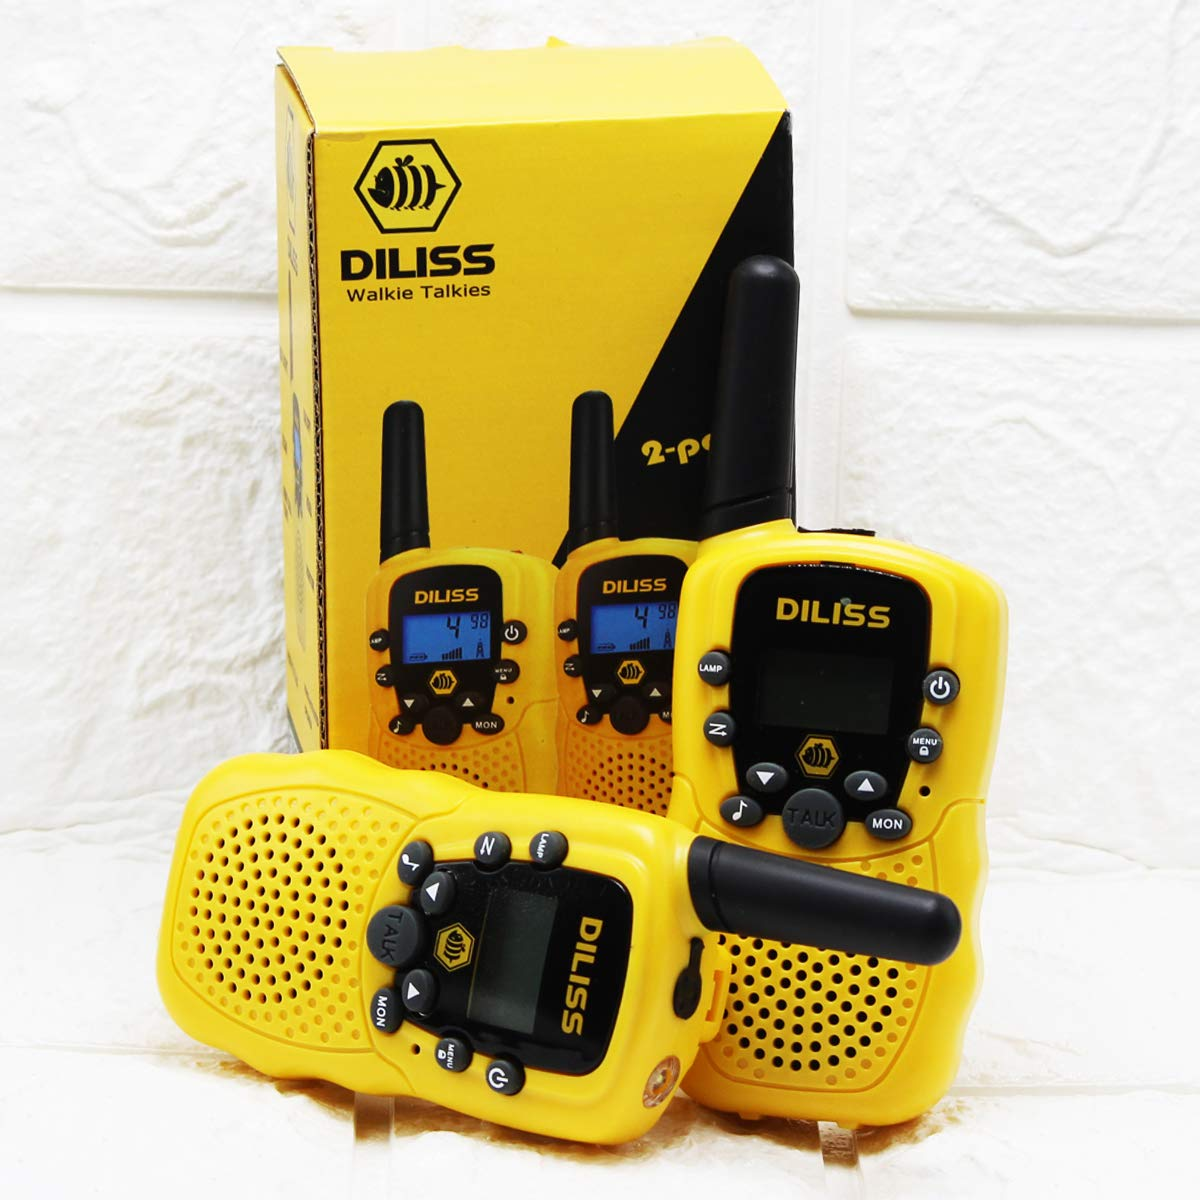 DilissToys Walkie Talkies for Kids by DilissToys (Image #6)